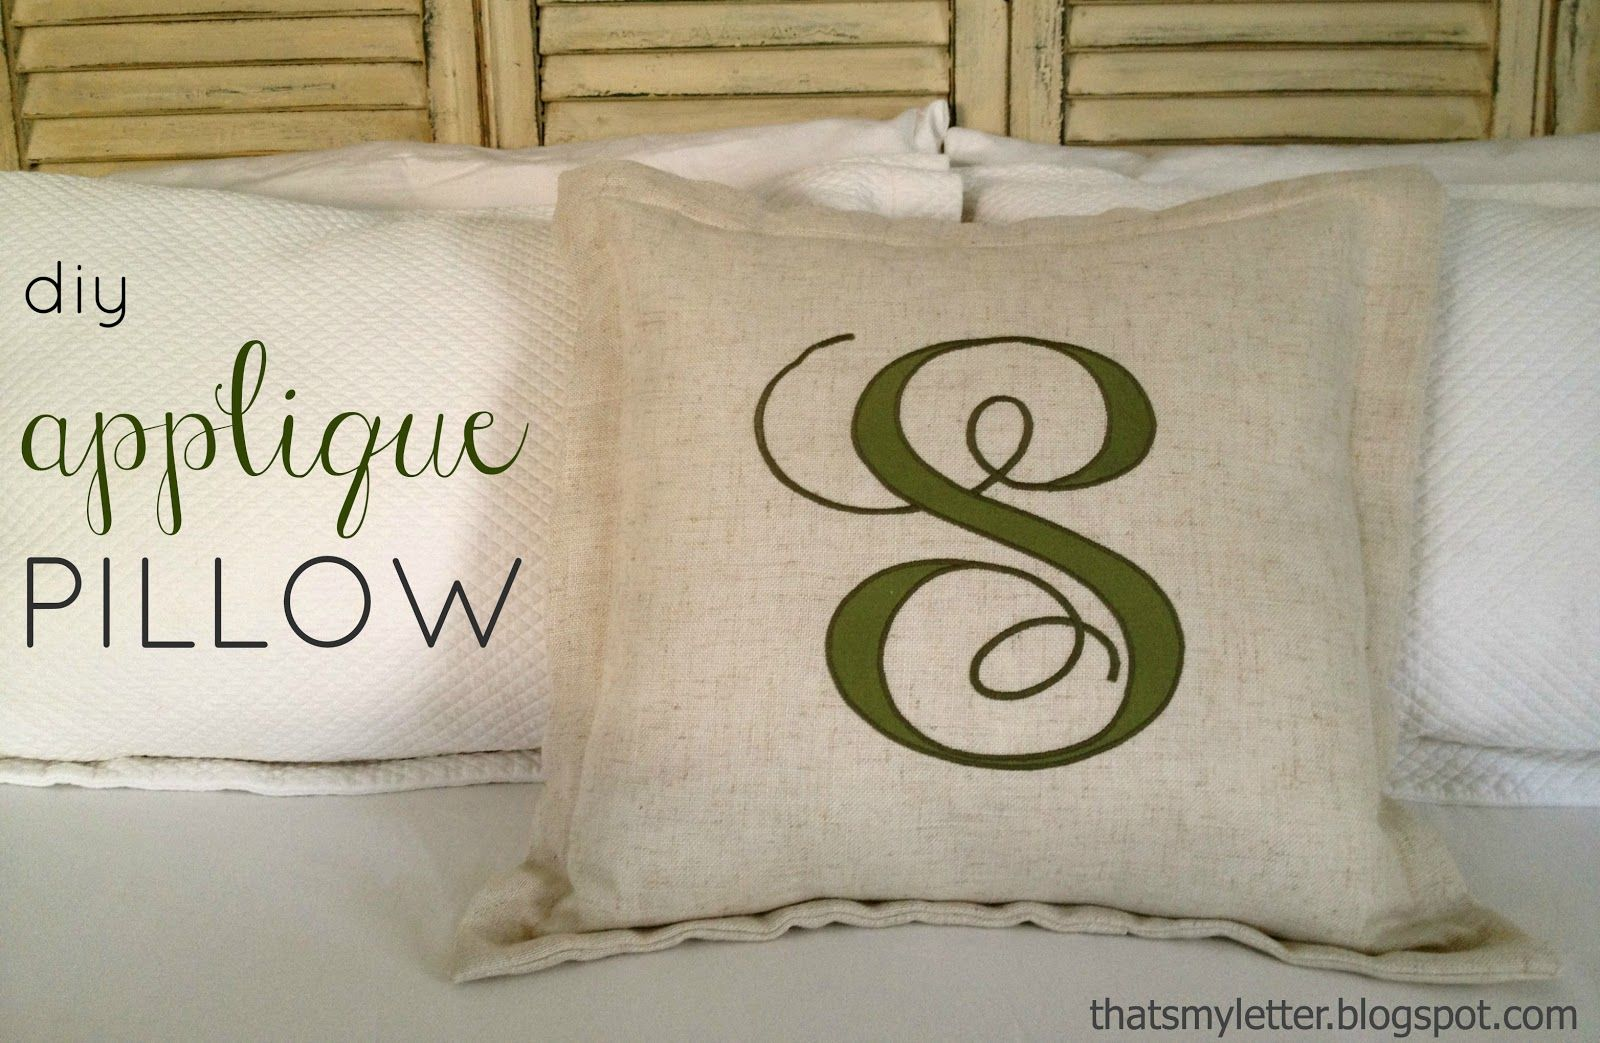 Applique pillow decor ideas pinterest applique pillows